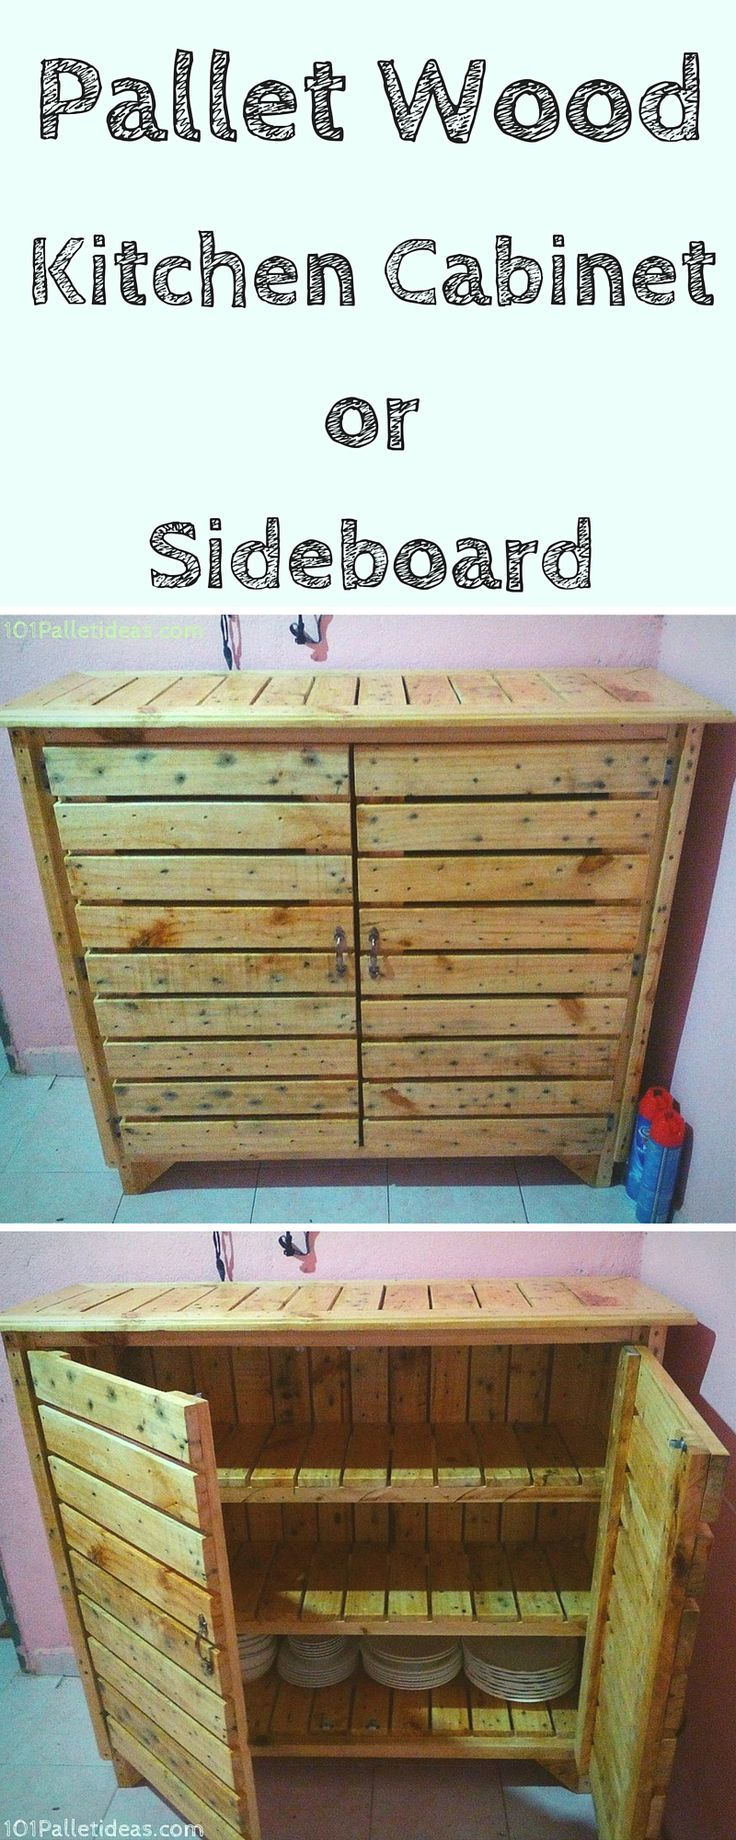 There are plenty of useful tips pertaining to your wood working ventures found at http://www.woodesigner.net